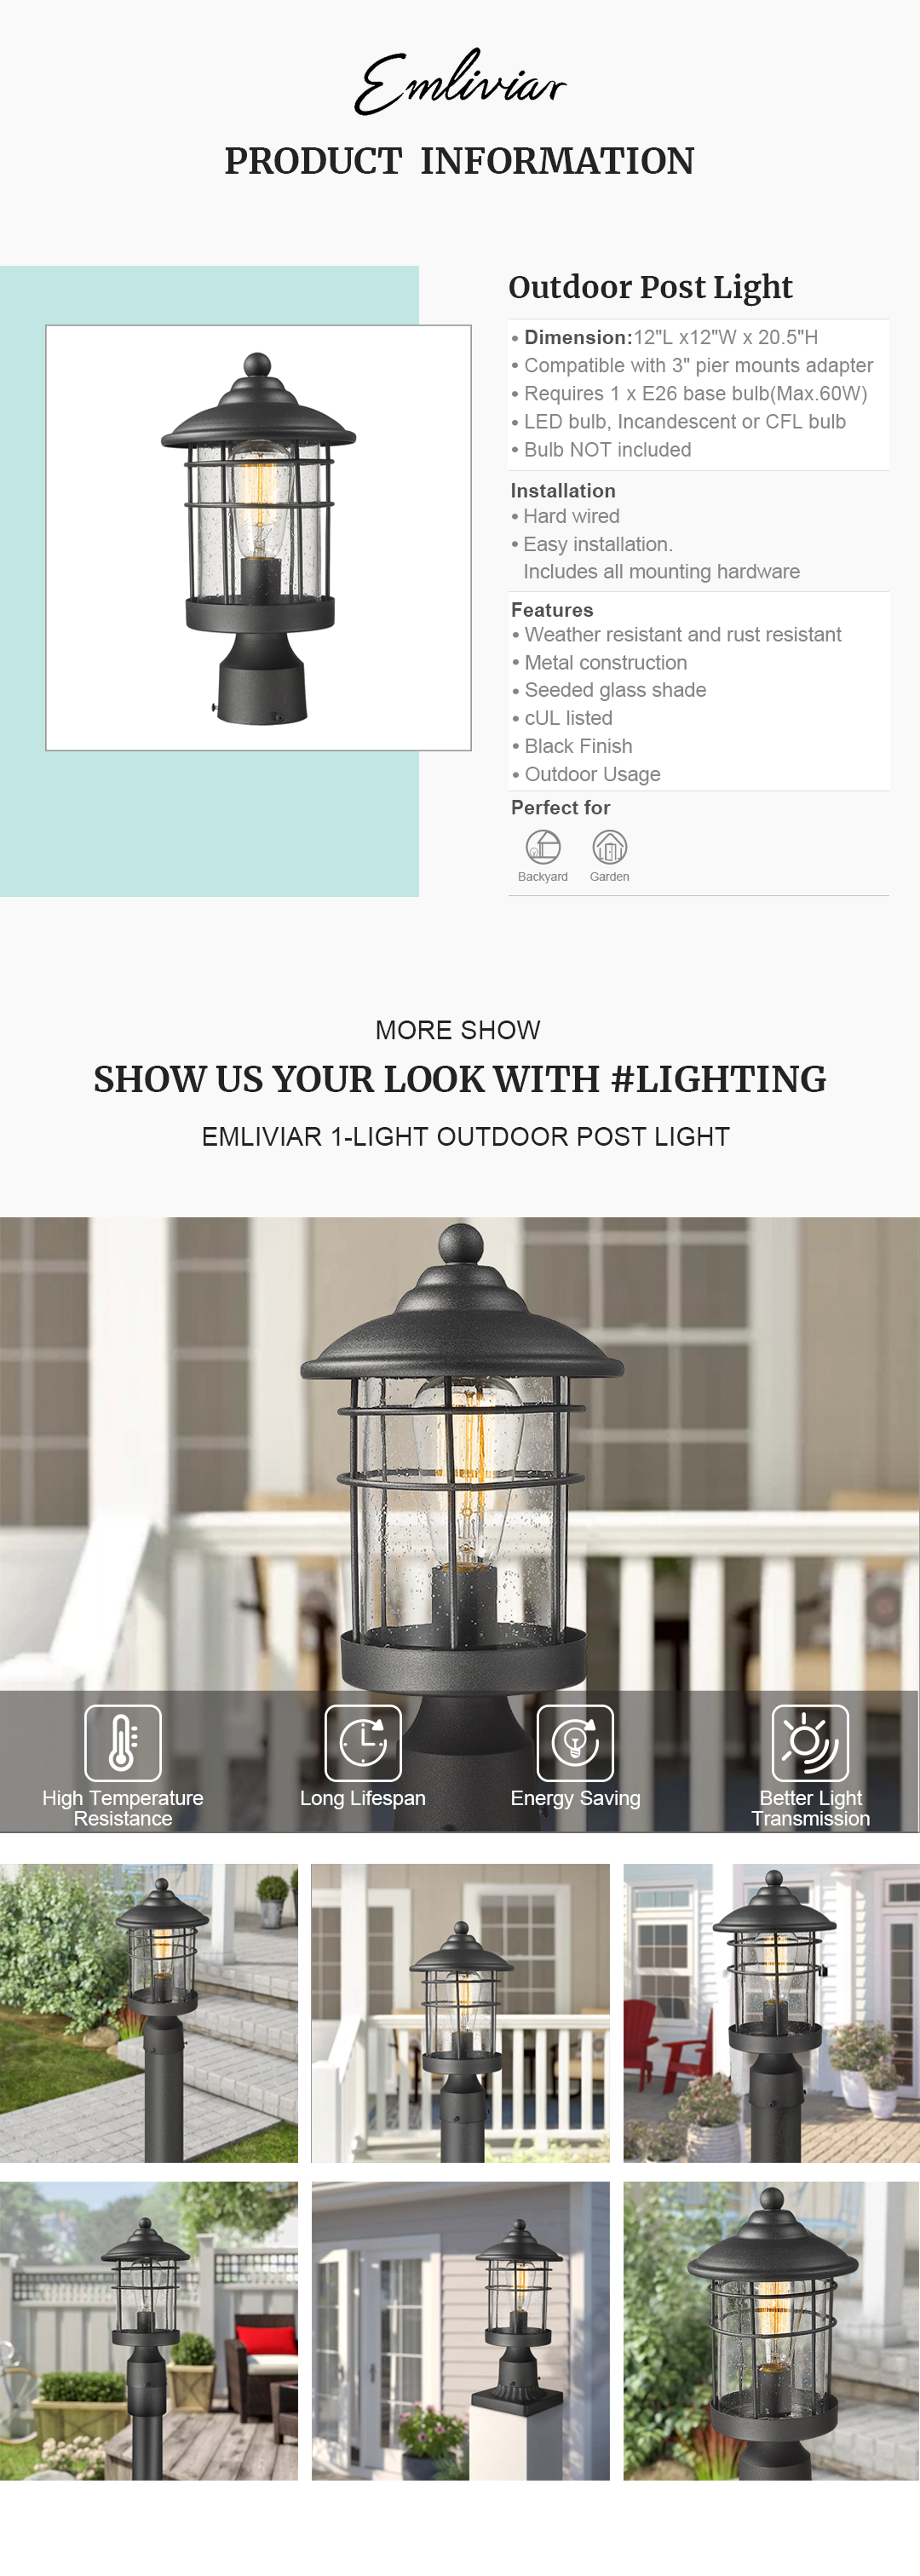 """Weather resistant and rust resistant, this exterior post light features sturdy metal construction and seeded glass shade, suitable for wet locations The pillar light can be mounted on a pillar or column, or fit it with a 3"""" diameter mounting base(Not included). Easy installation. Includes all mounting hardware Hard wired. Requires 1 x E26 base bulb(Max.60W). Bulb NOT included. Compatible with LED bulb, Incandescent or CFL bulb cUL Listed with a one-year warranty. This post mount light fixture is perfect for garden, backyard, courtyard, patio, balcony, porch, pathway or entryway. Dimension: 7.1"""" x 7.1"""" x 13.2""""(L x W x H); Compatible with 3"""" pier mounts adapter(Sold Separately)"""